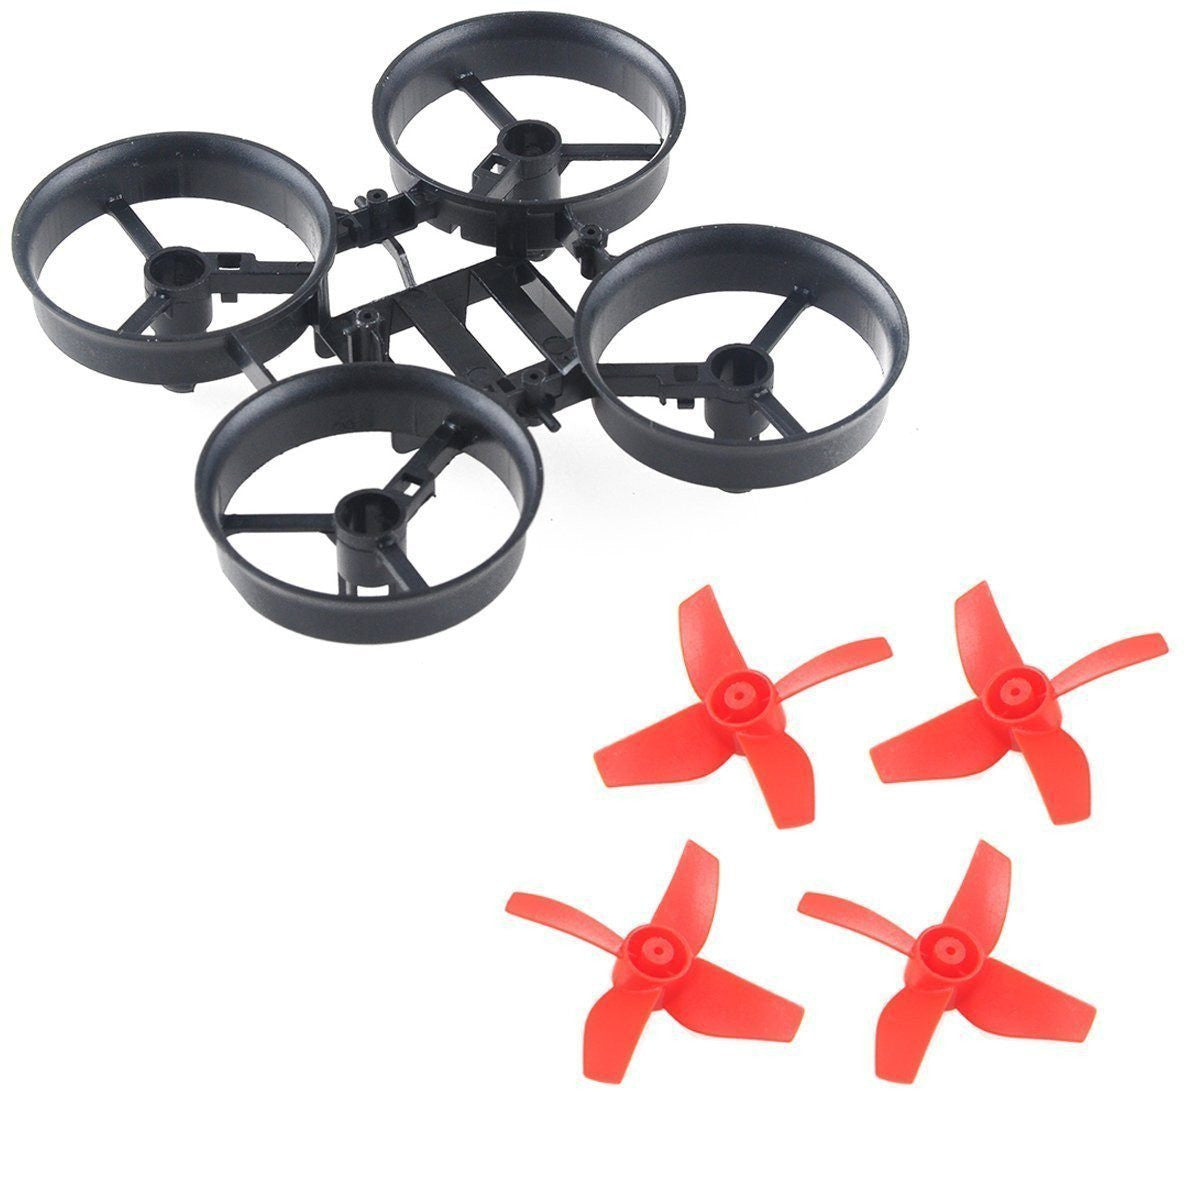 Eachine EO10 Replacement Frame kit-Nemos Miniquad Supplies